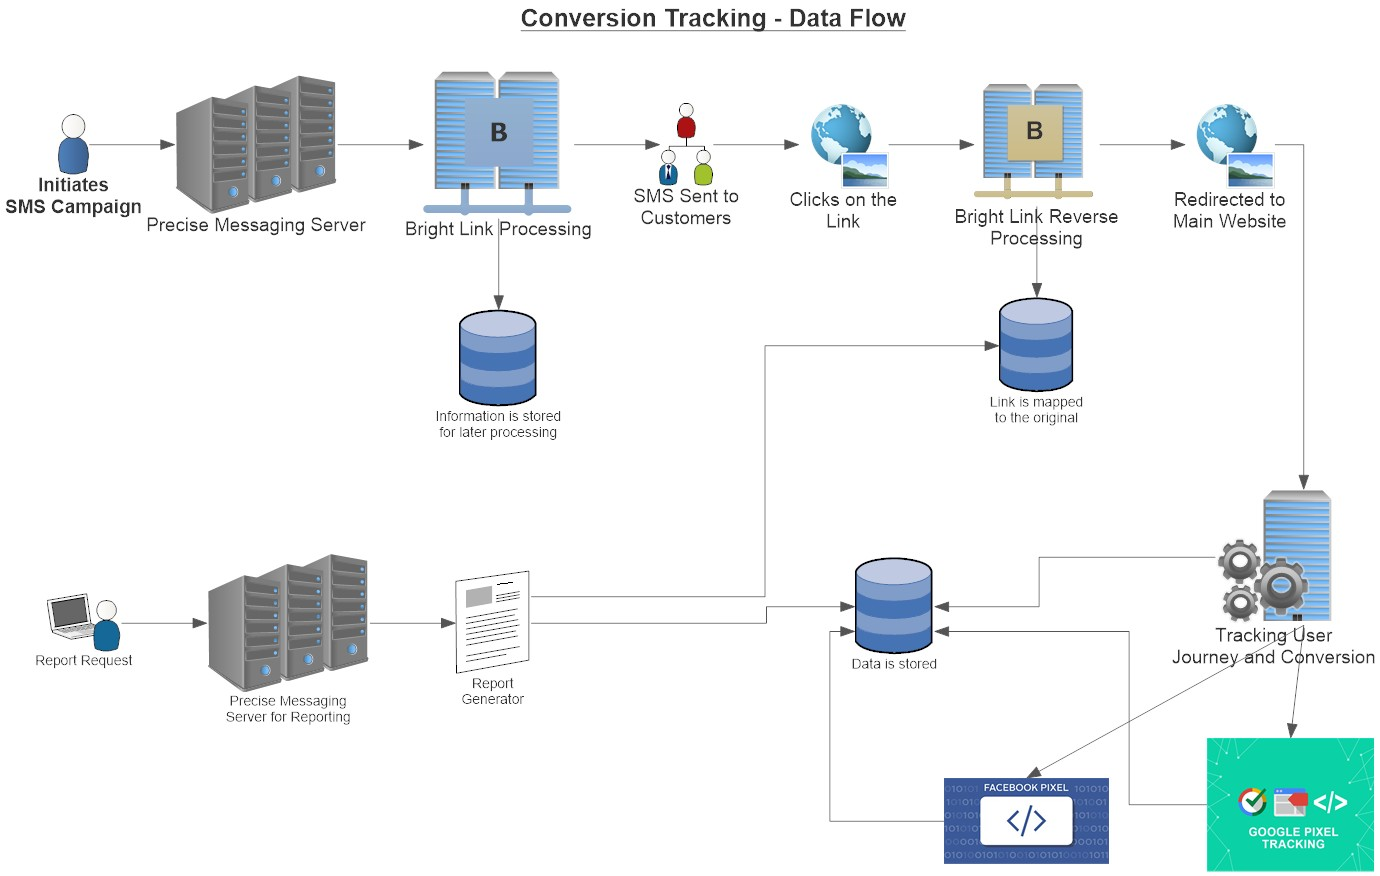 Conversion Tracking Data Flow & Bright Links